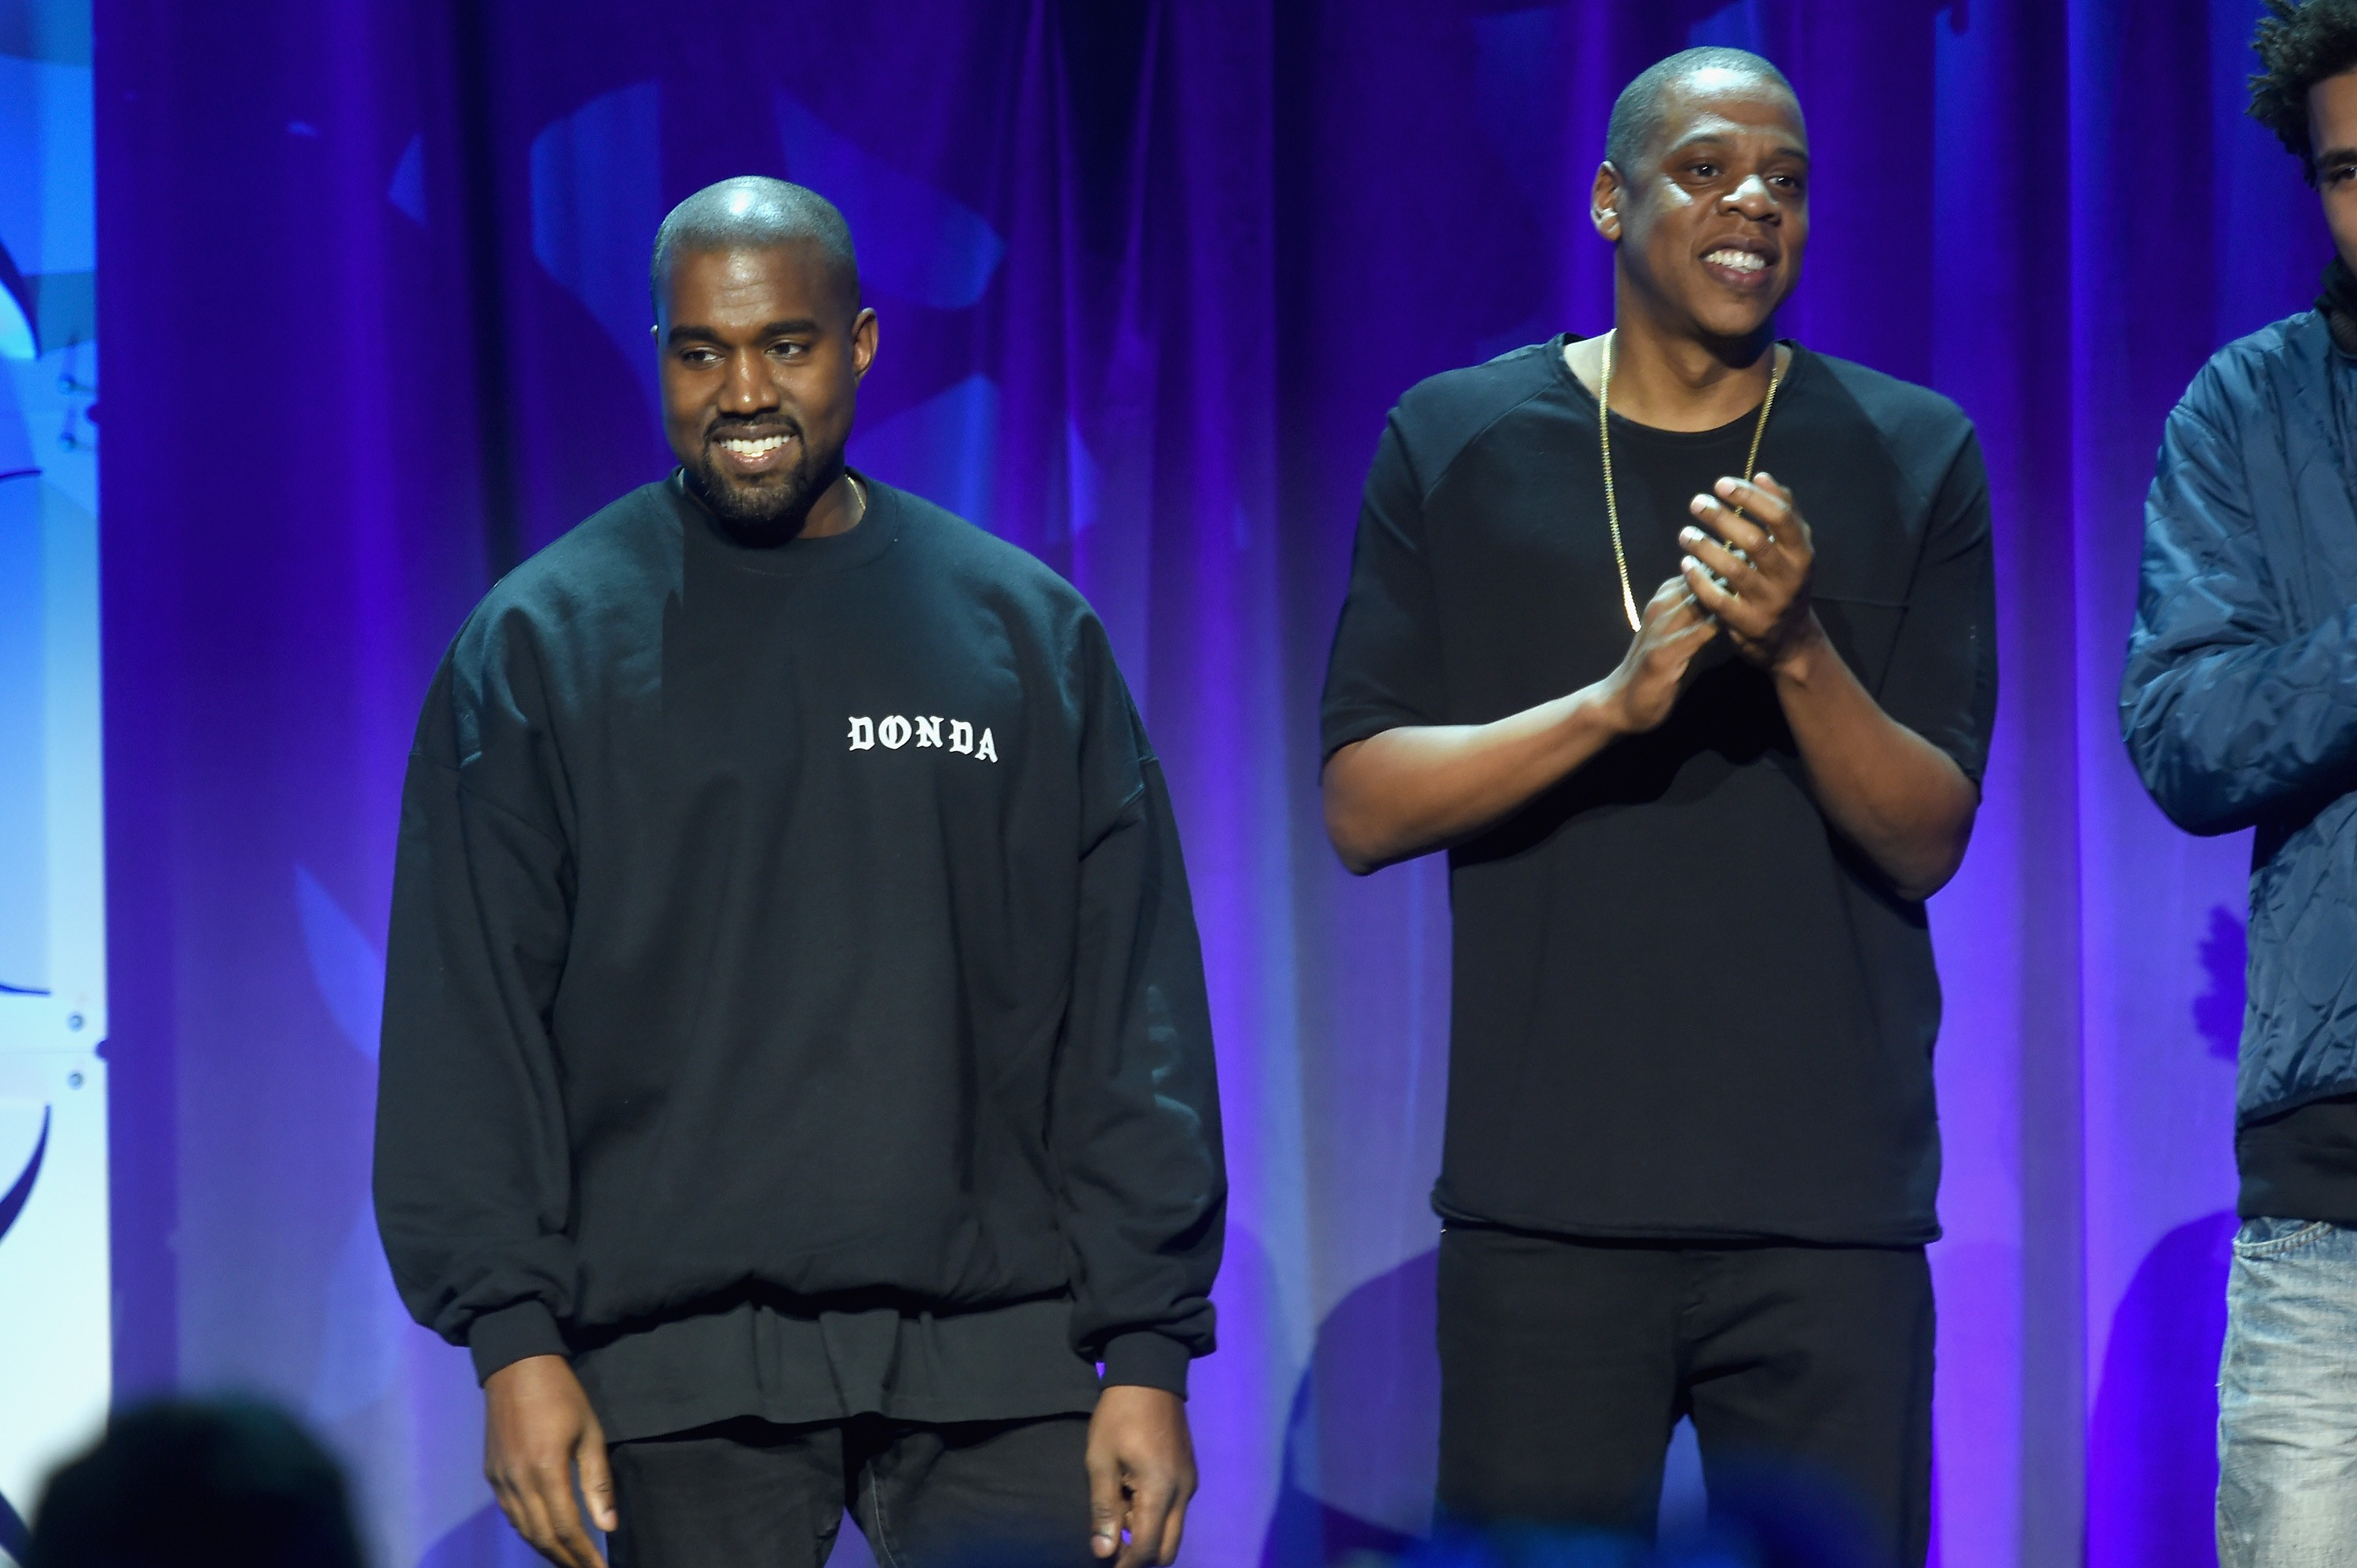 kanye-west-the-life-of-pablo-tidal-exclusivity-lawsuit